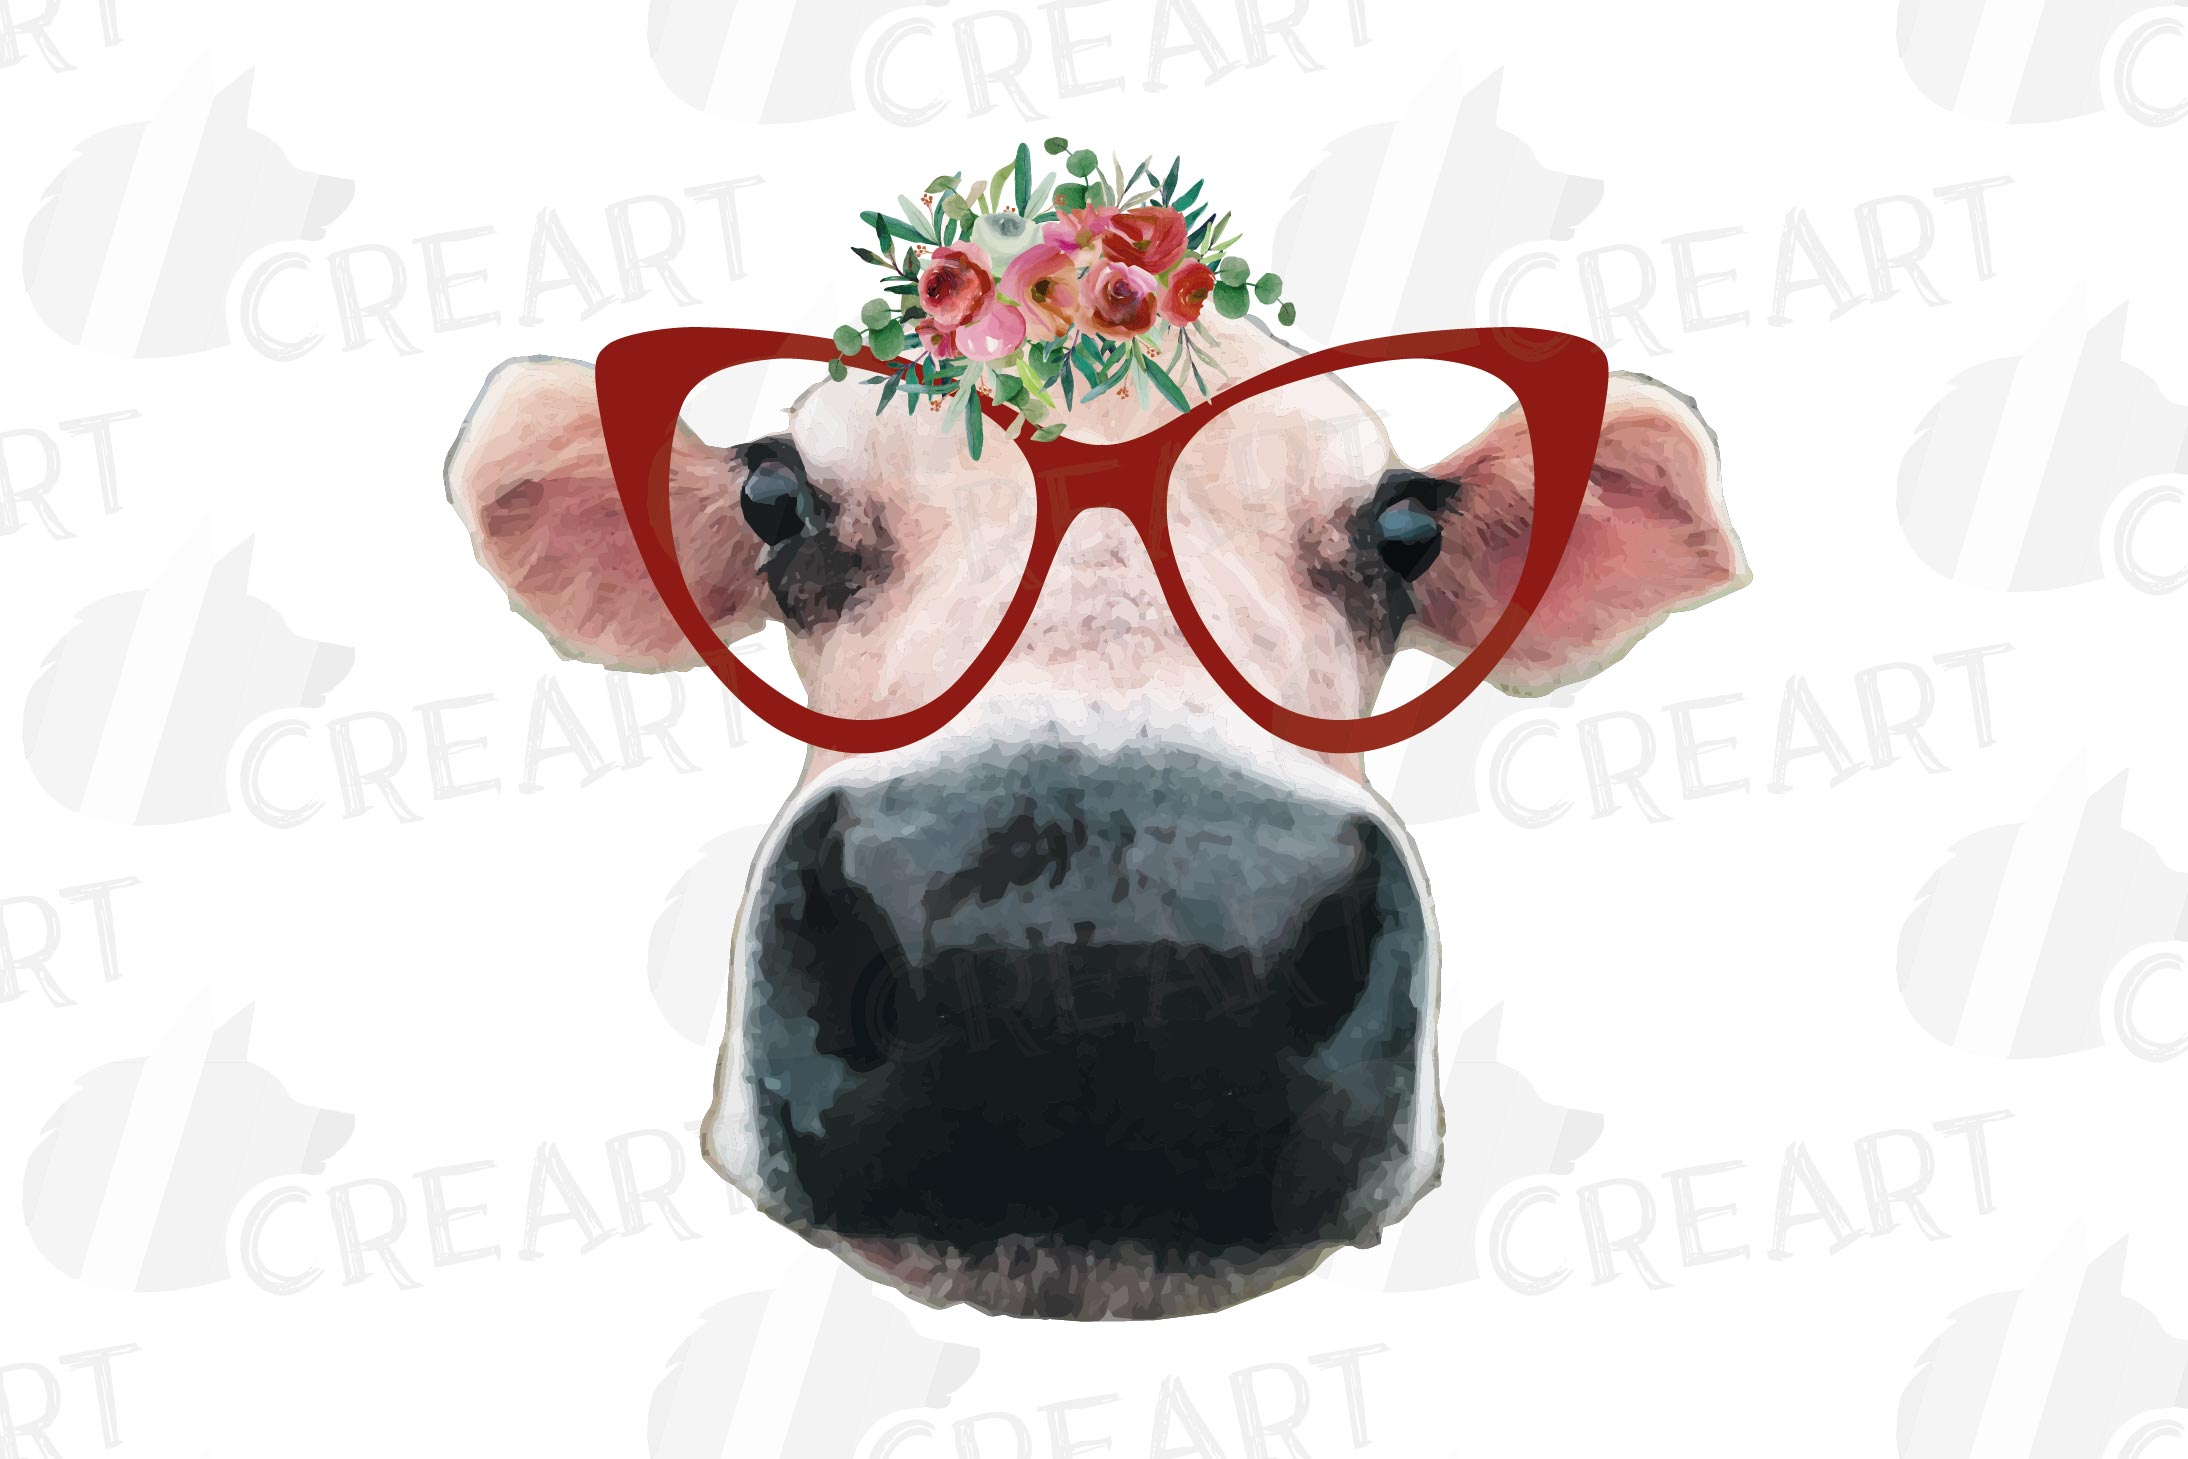 Cows with floral crown clip art. Not today heifer graphic example image 3